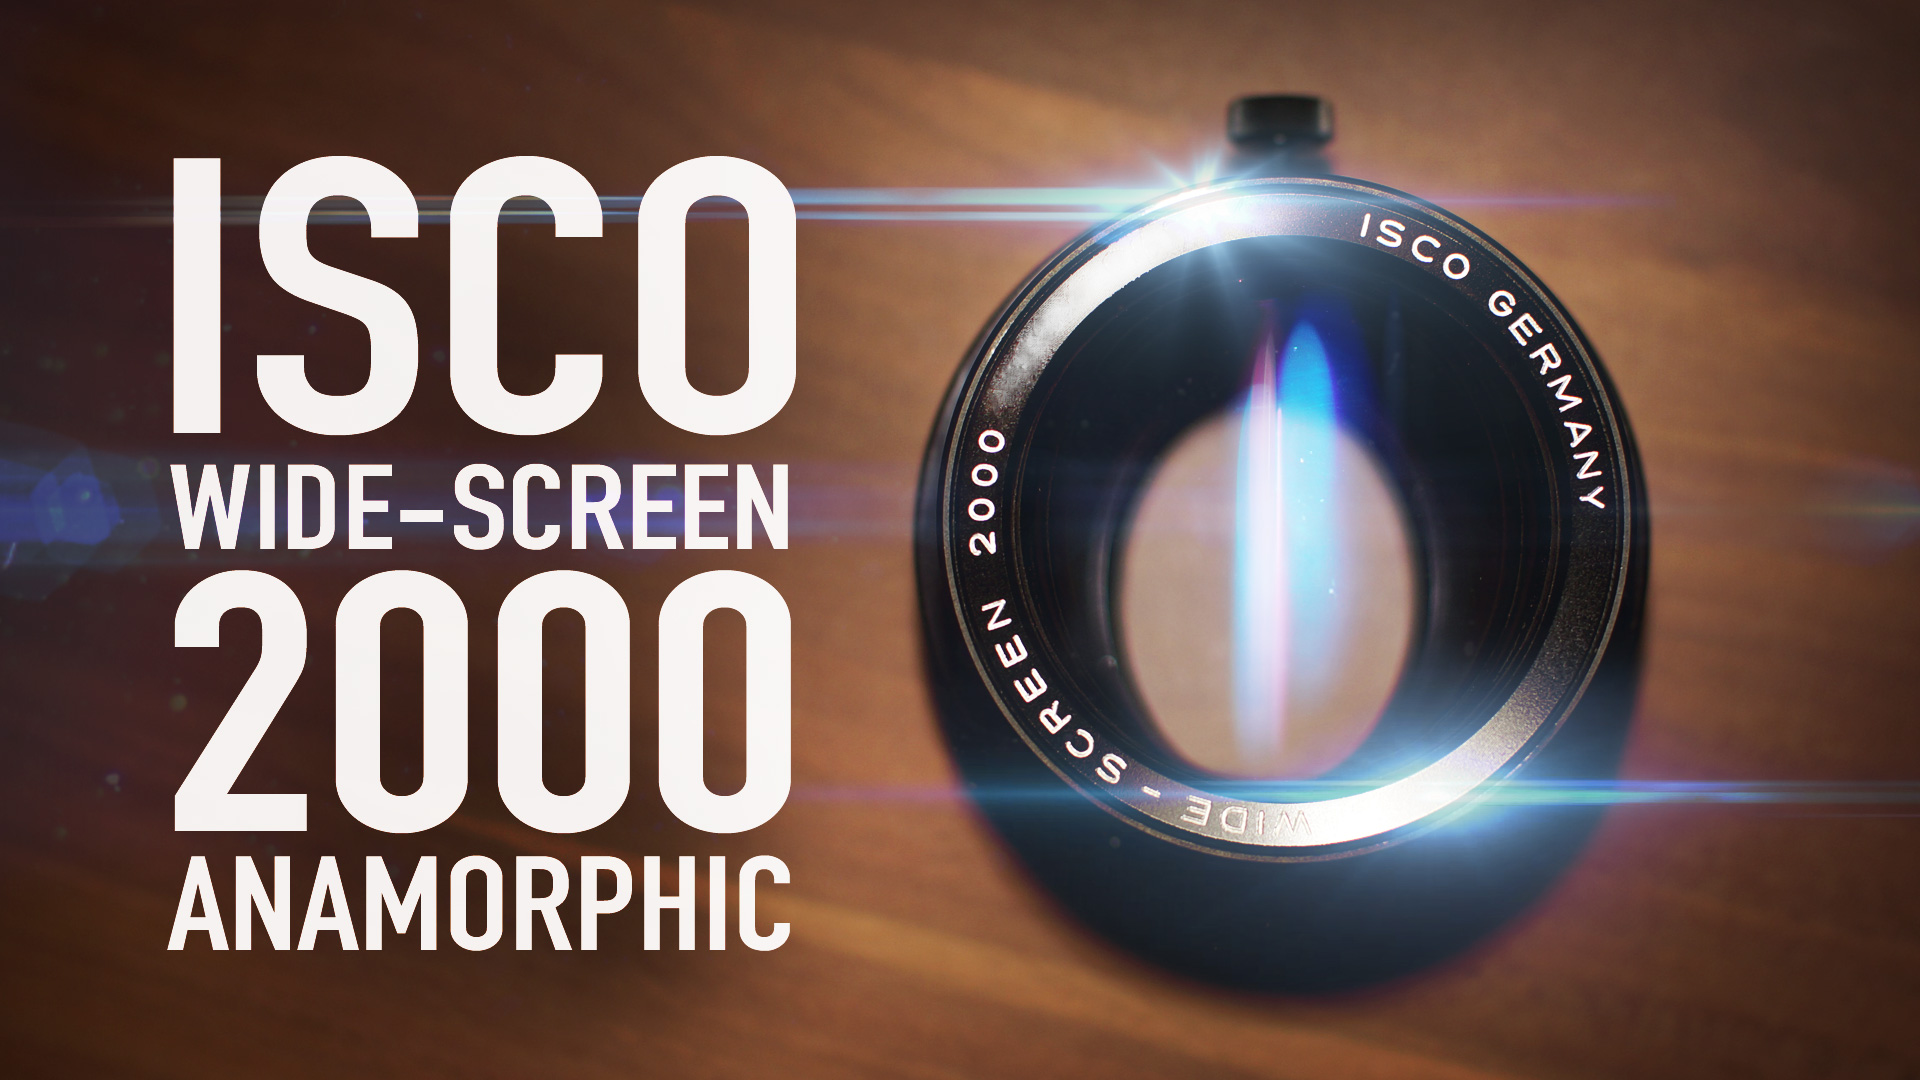 ISCO WIDE-SCREEN 2000 1.5x Anamorphic Lens | In-Depth Review